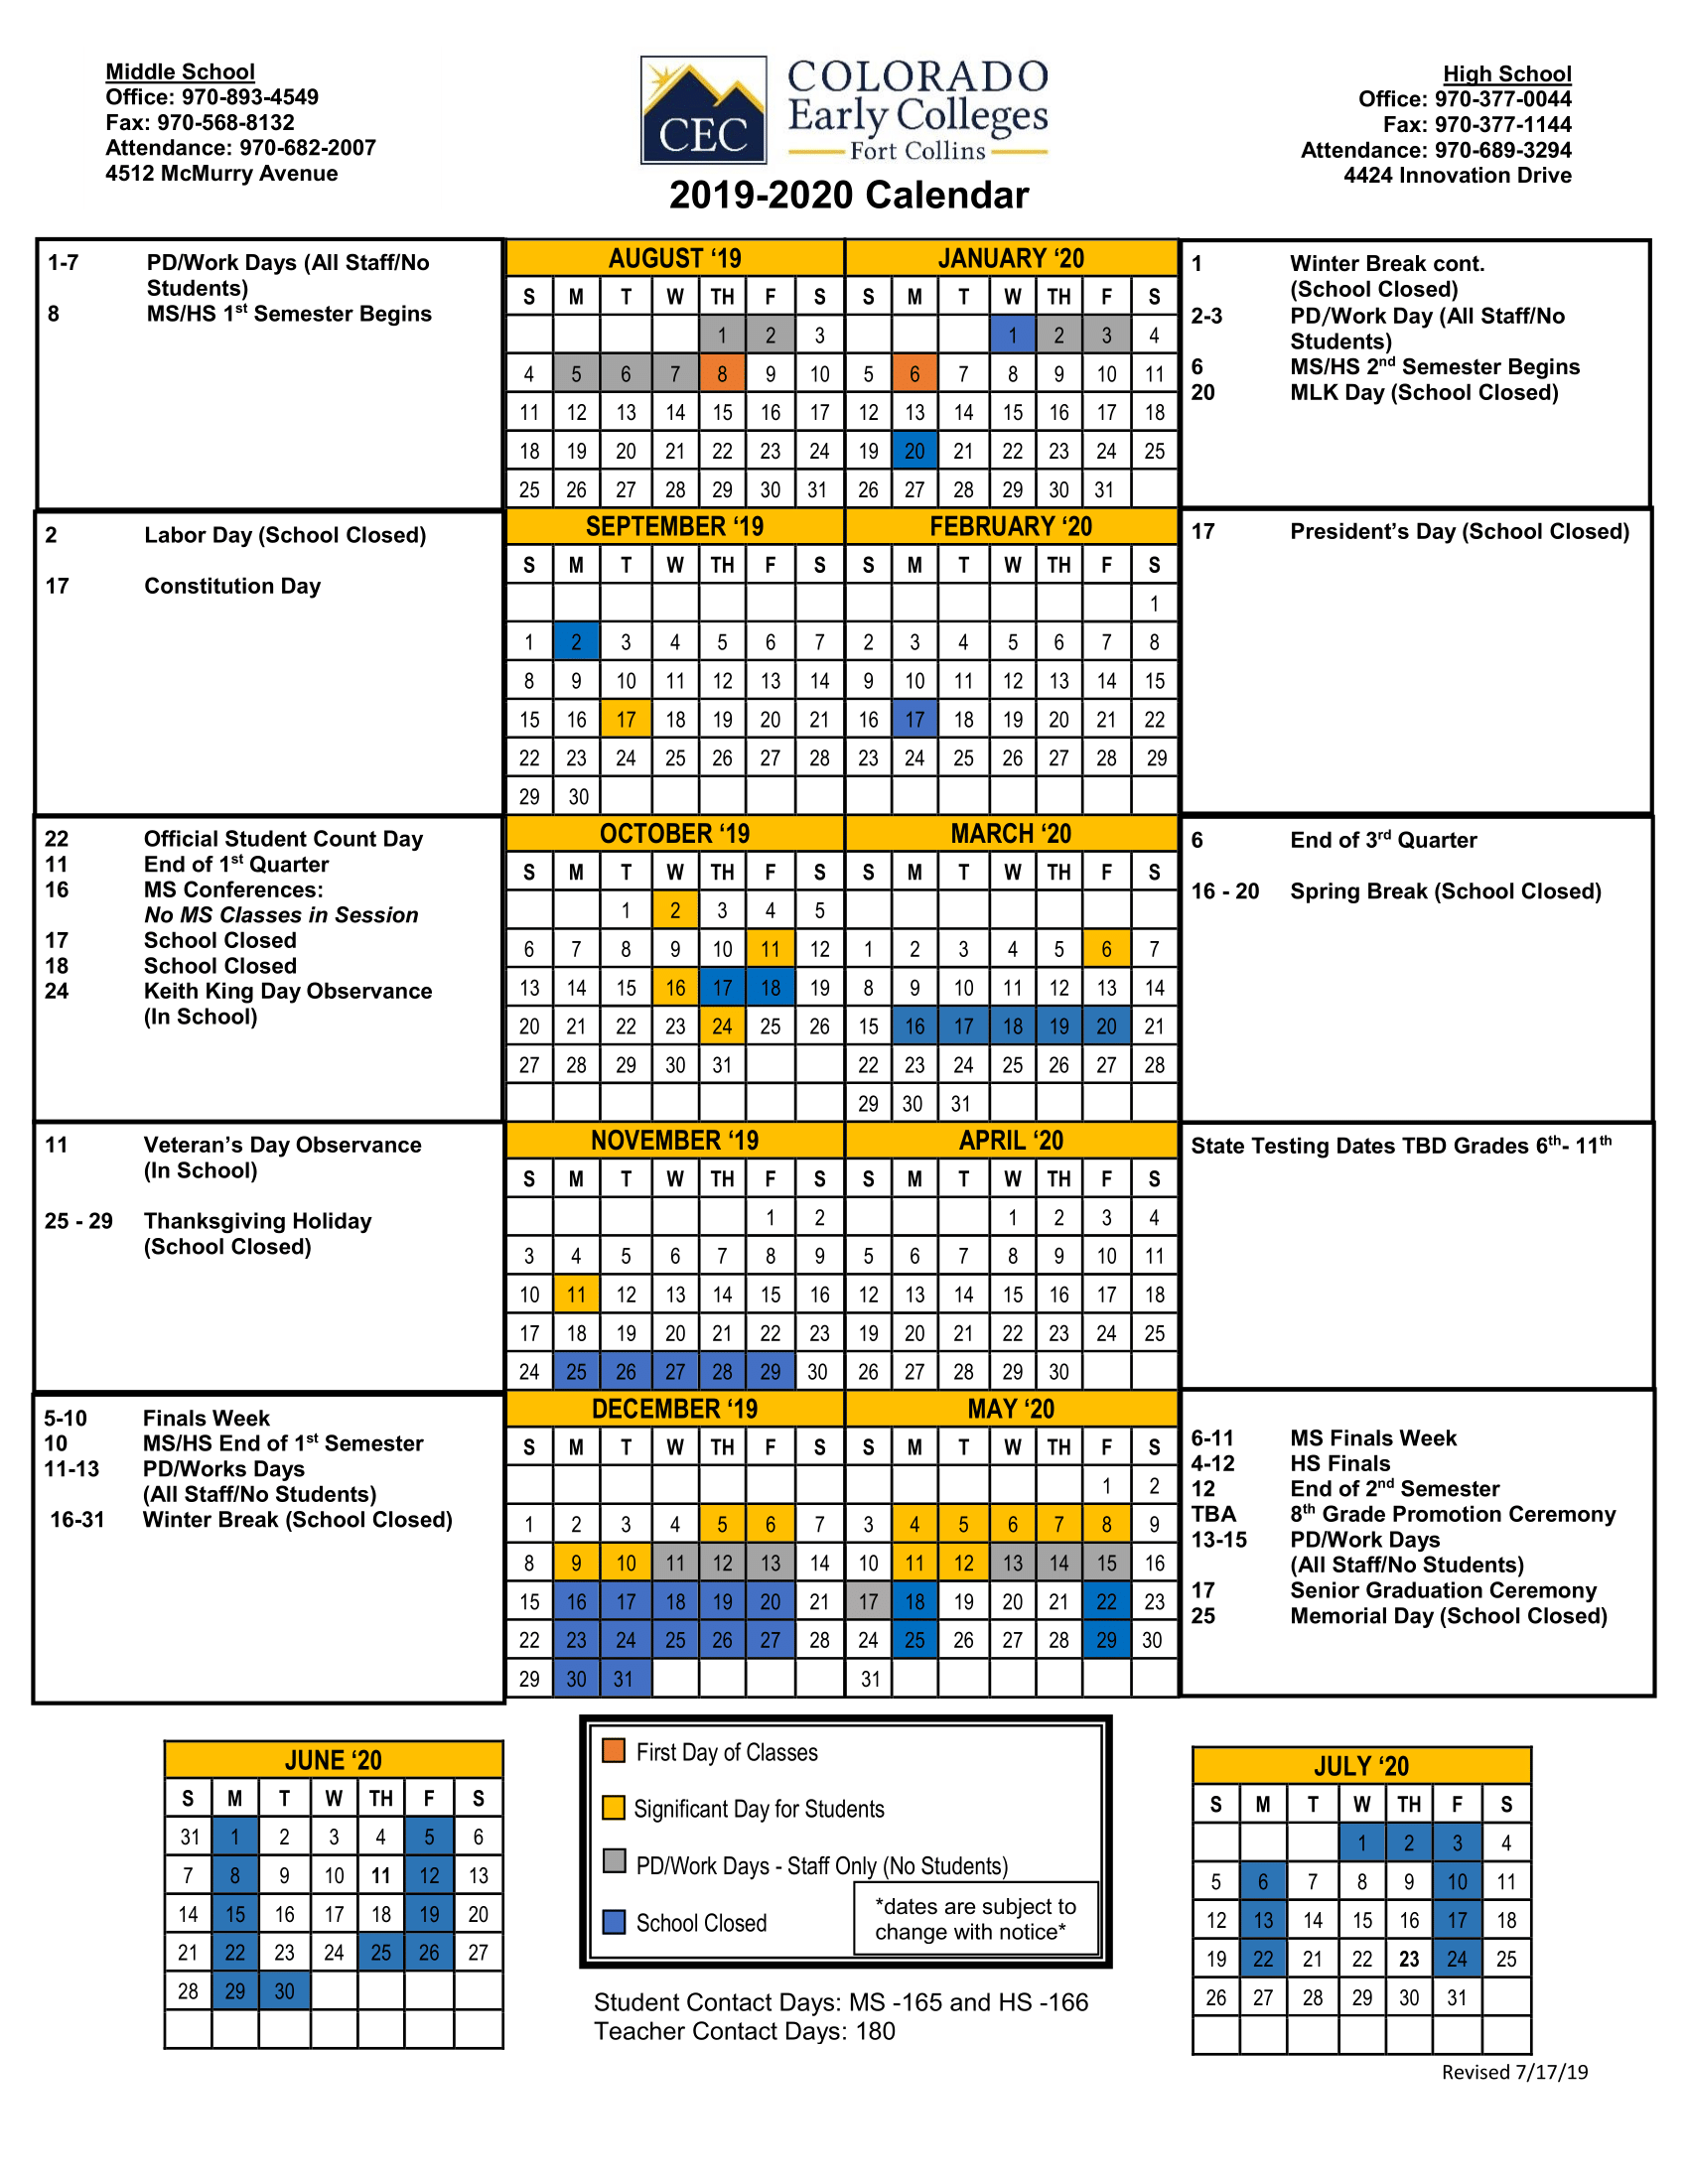 Official School Calendar 19-20